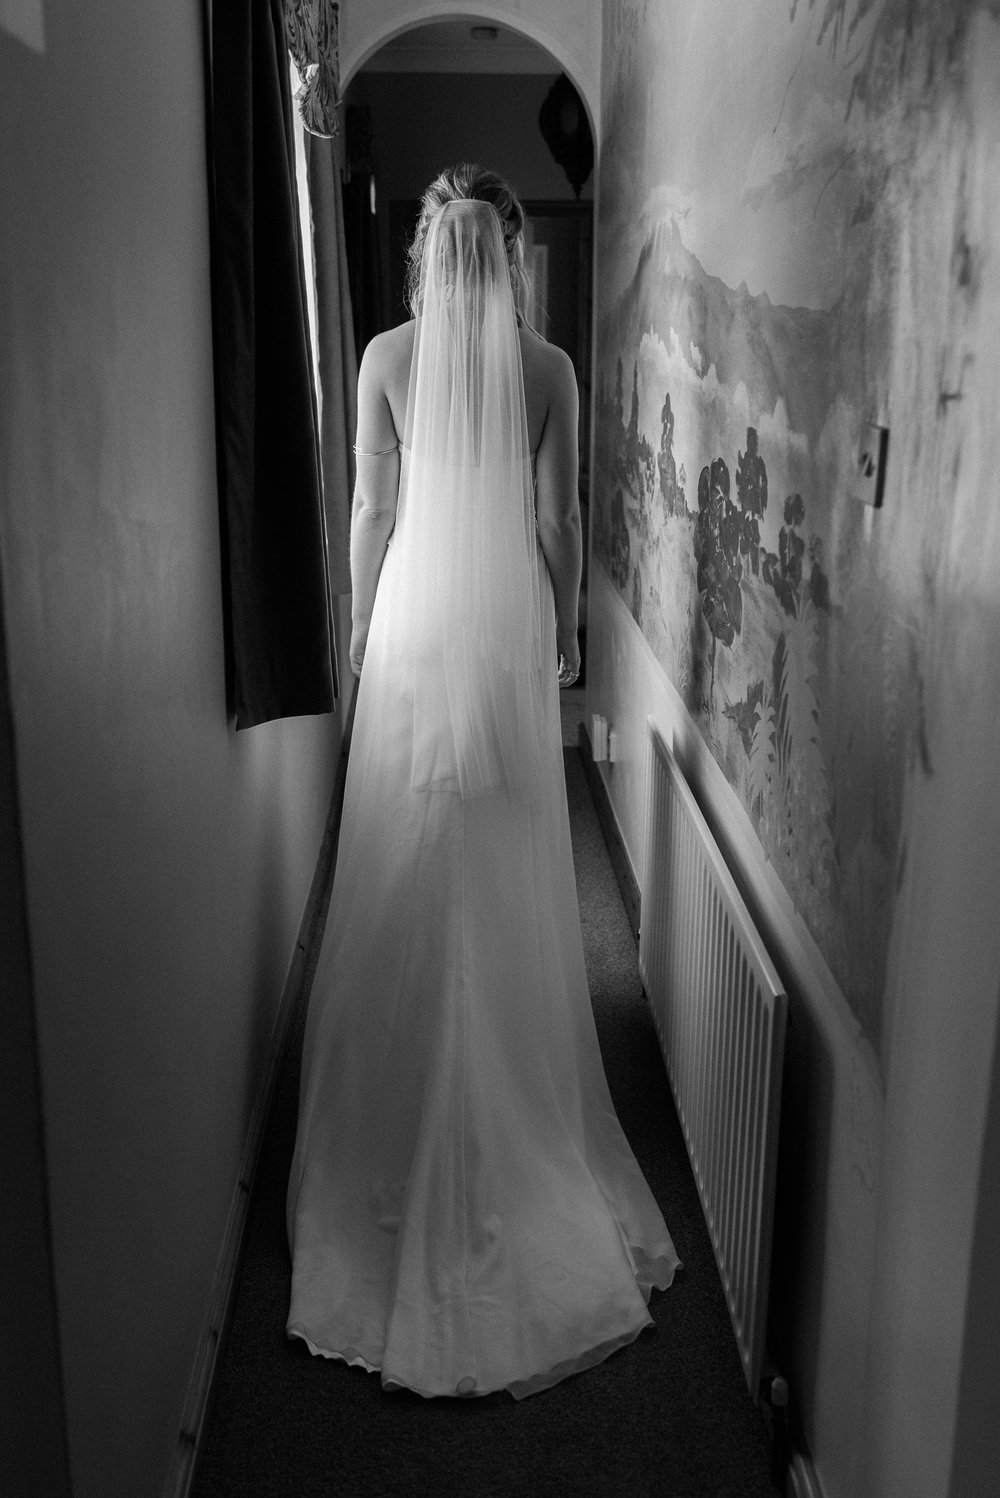 The bride on her way to her wedding